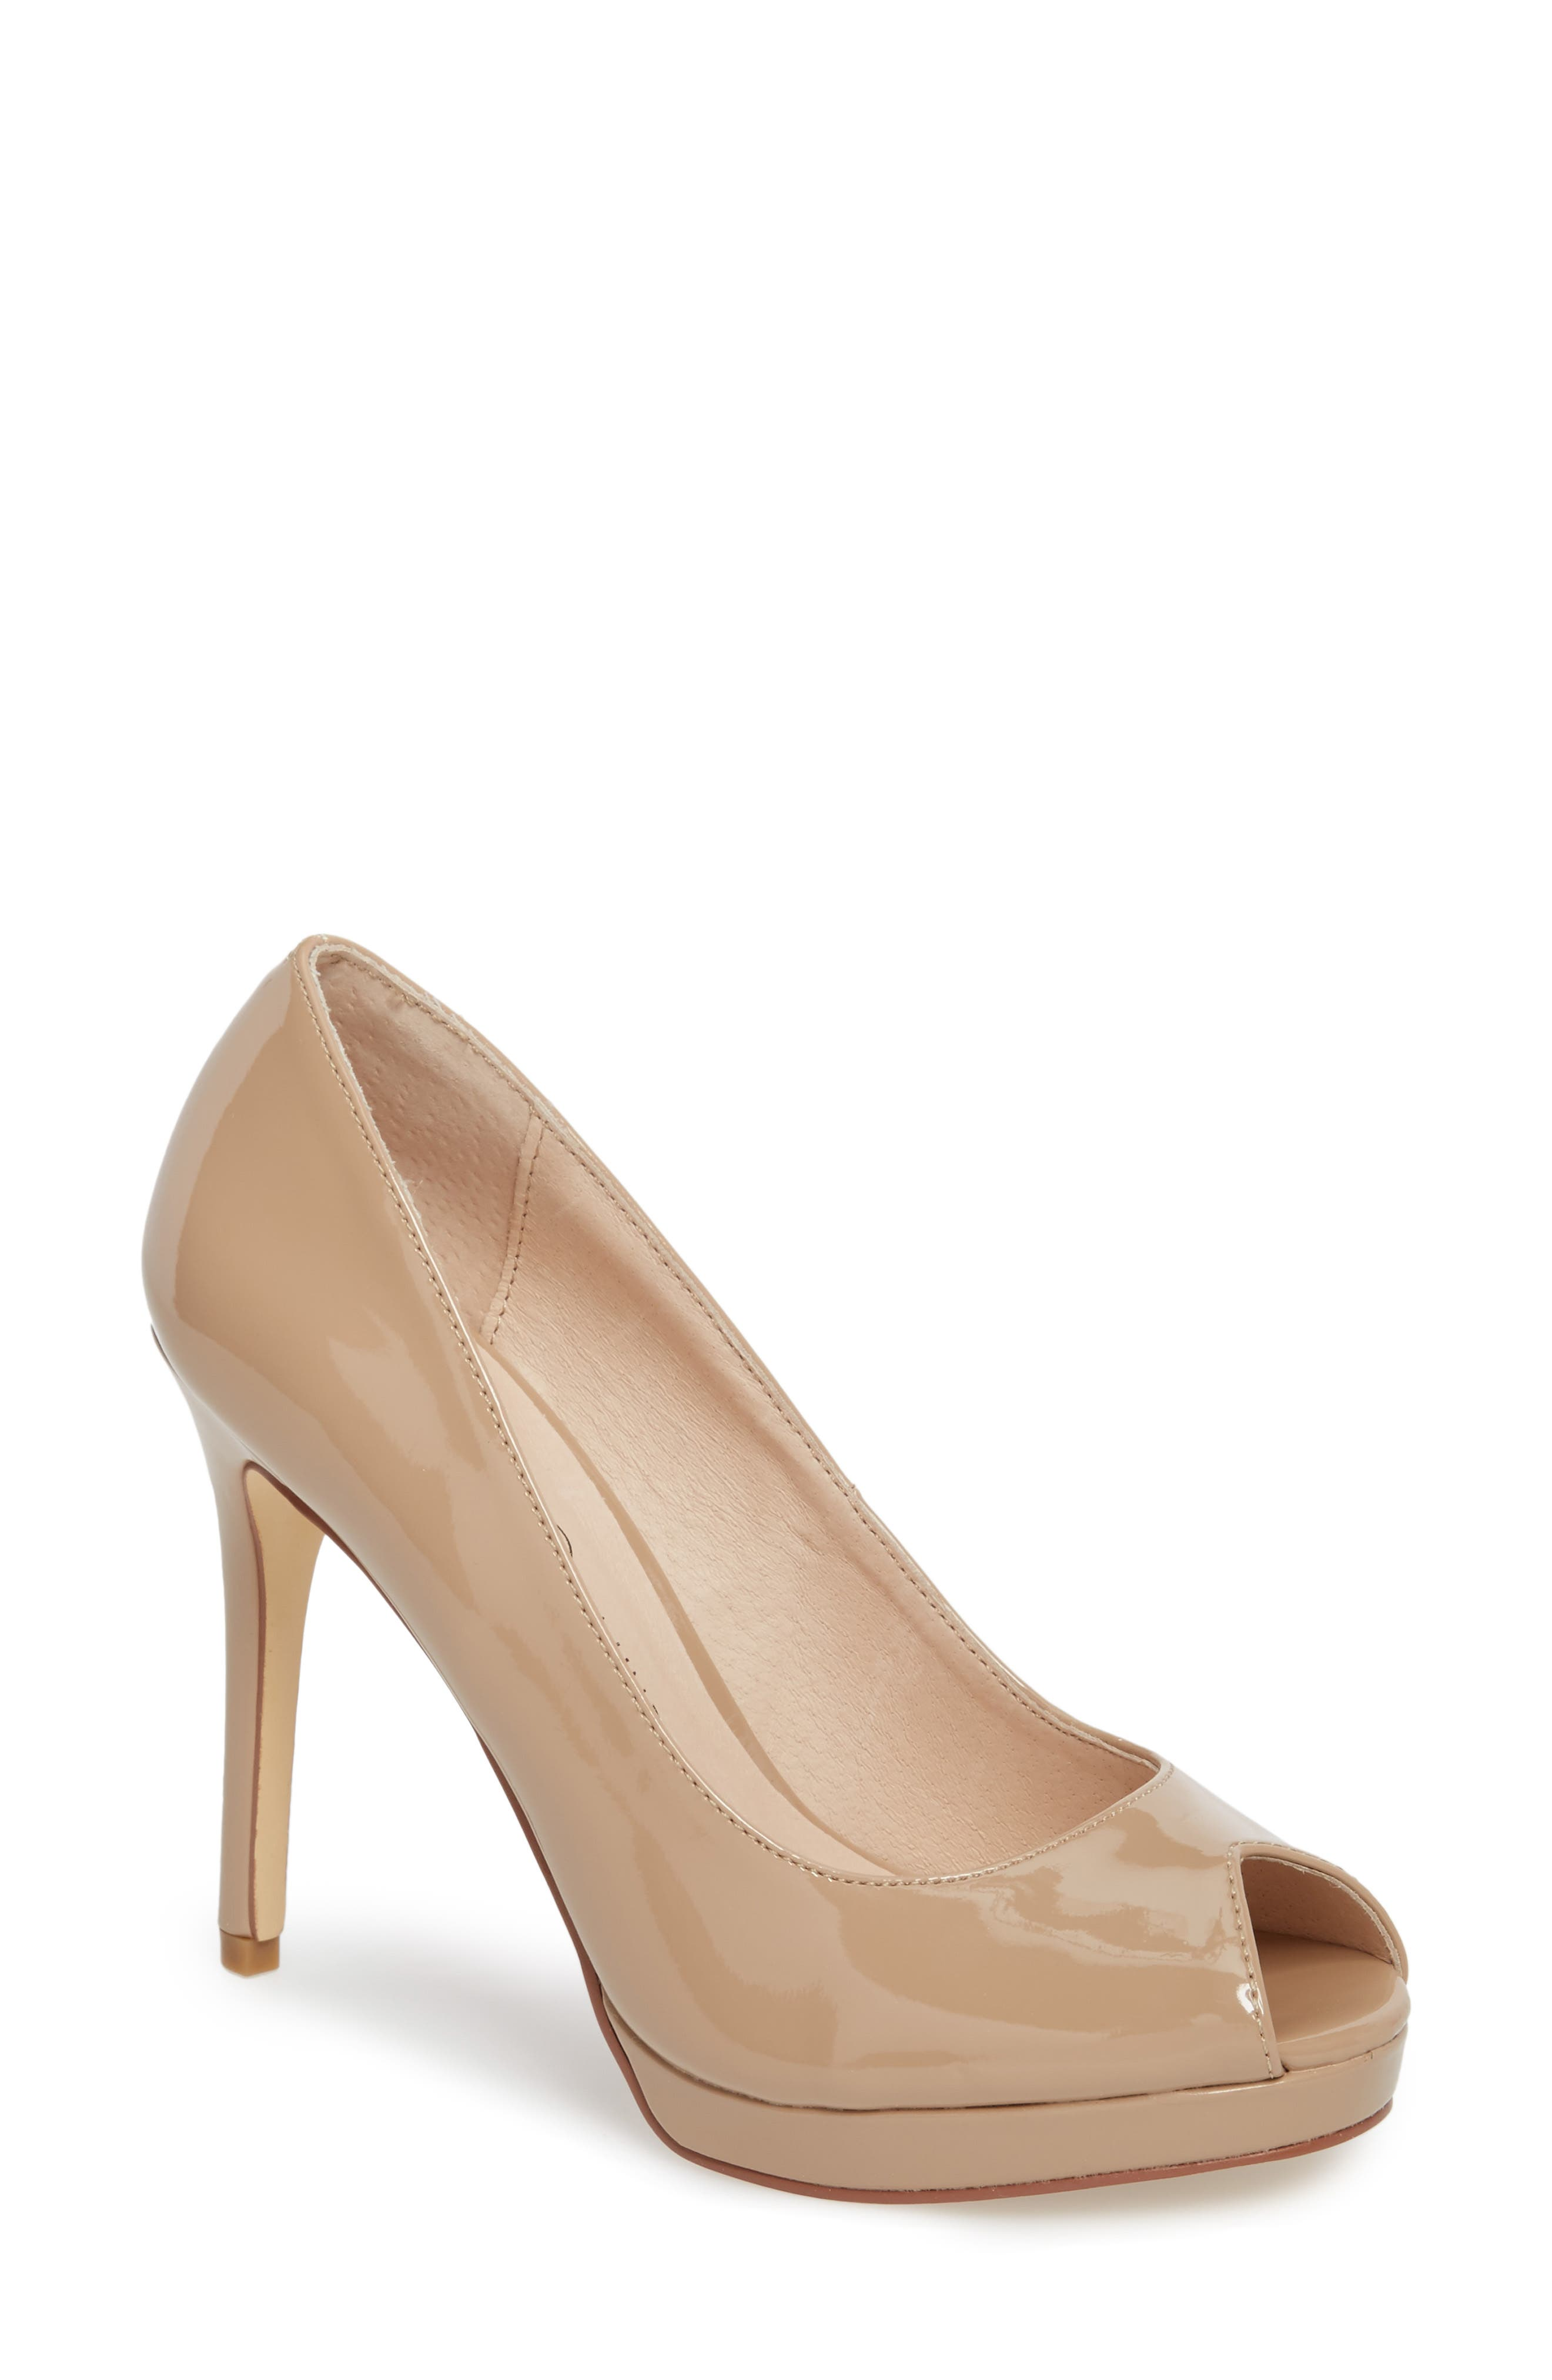 Fia Peep Toe Pump,                             Main thumbnail 1, color,                             Nude Patent